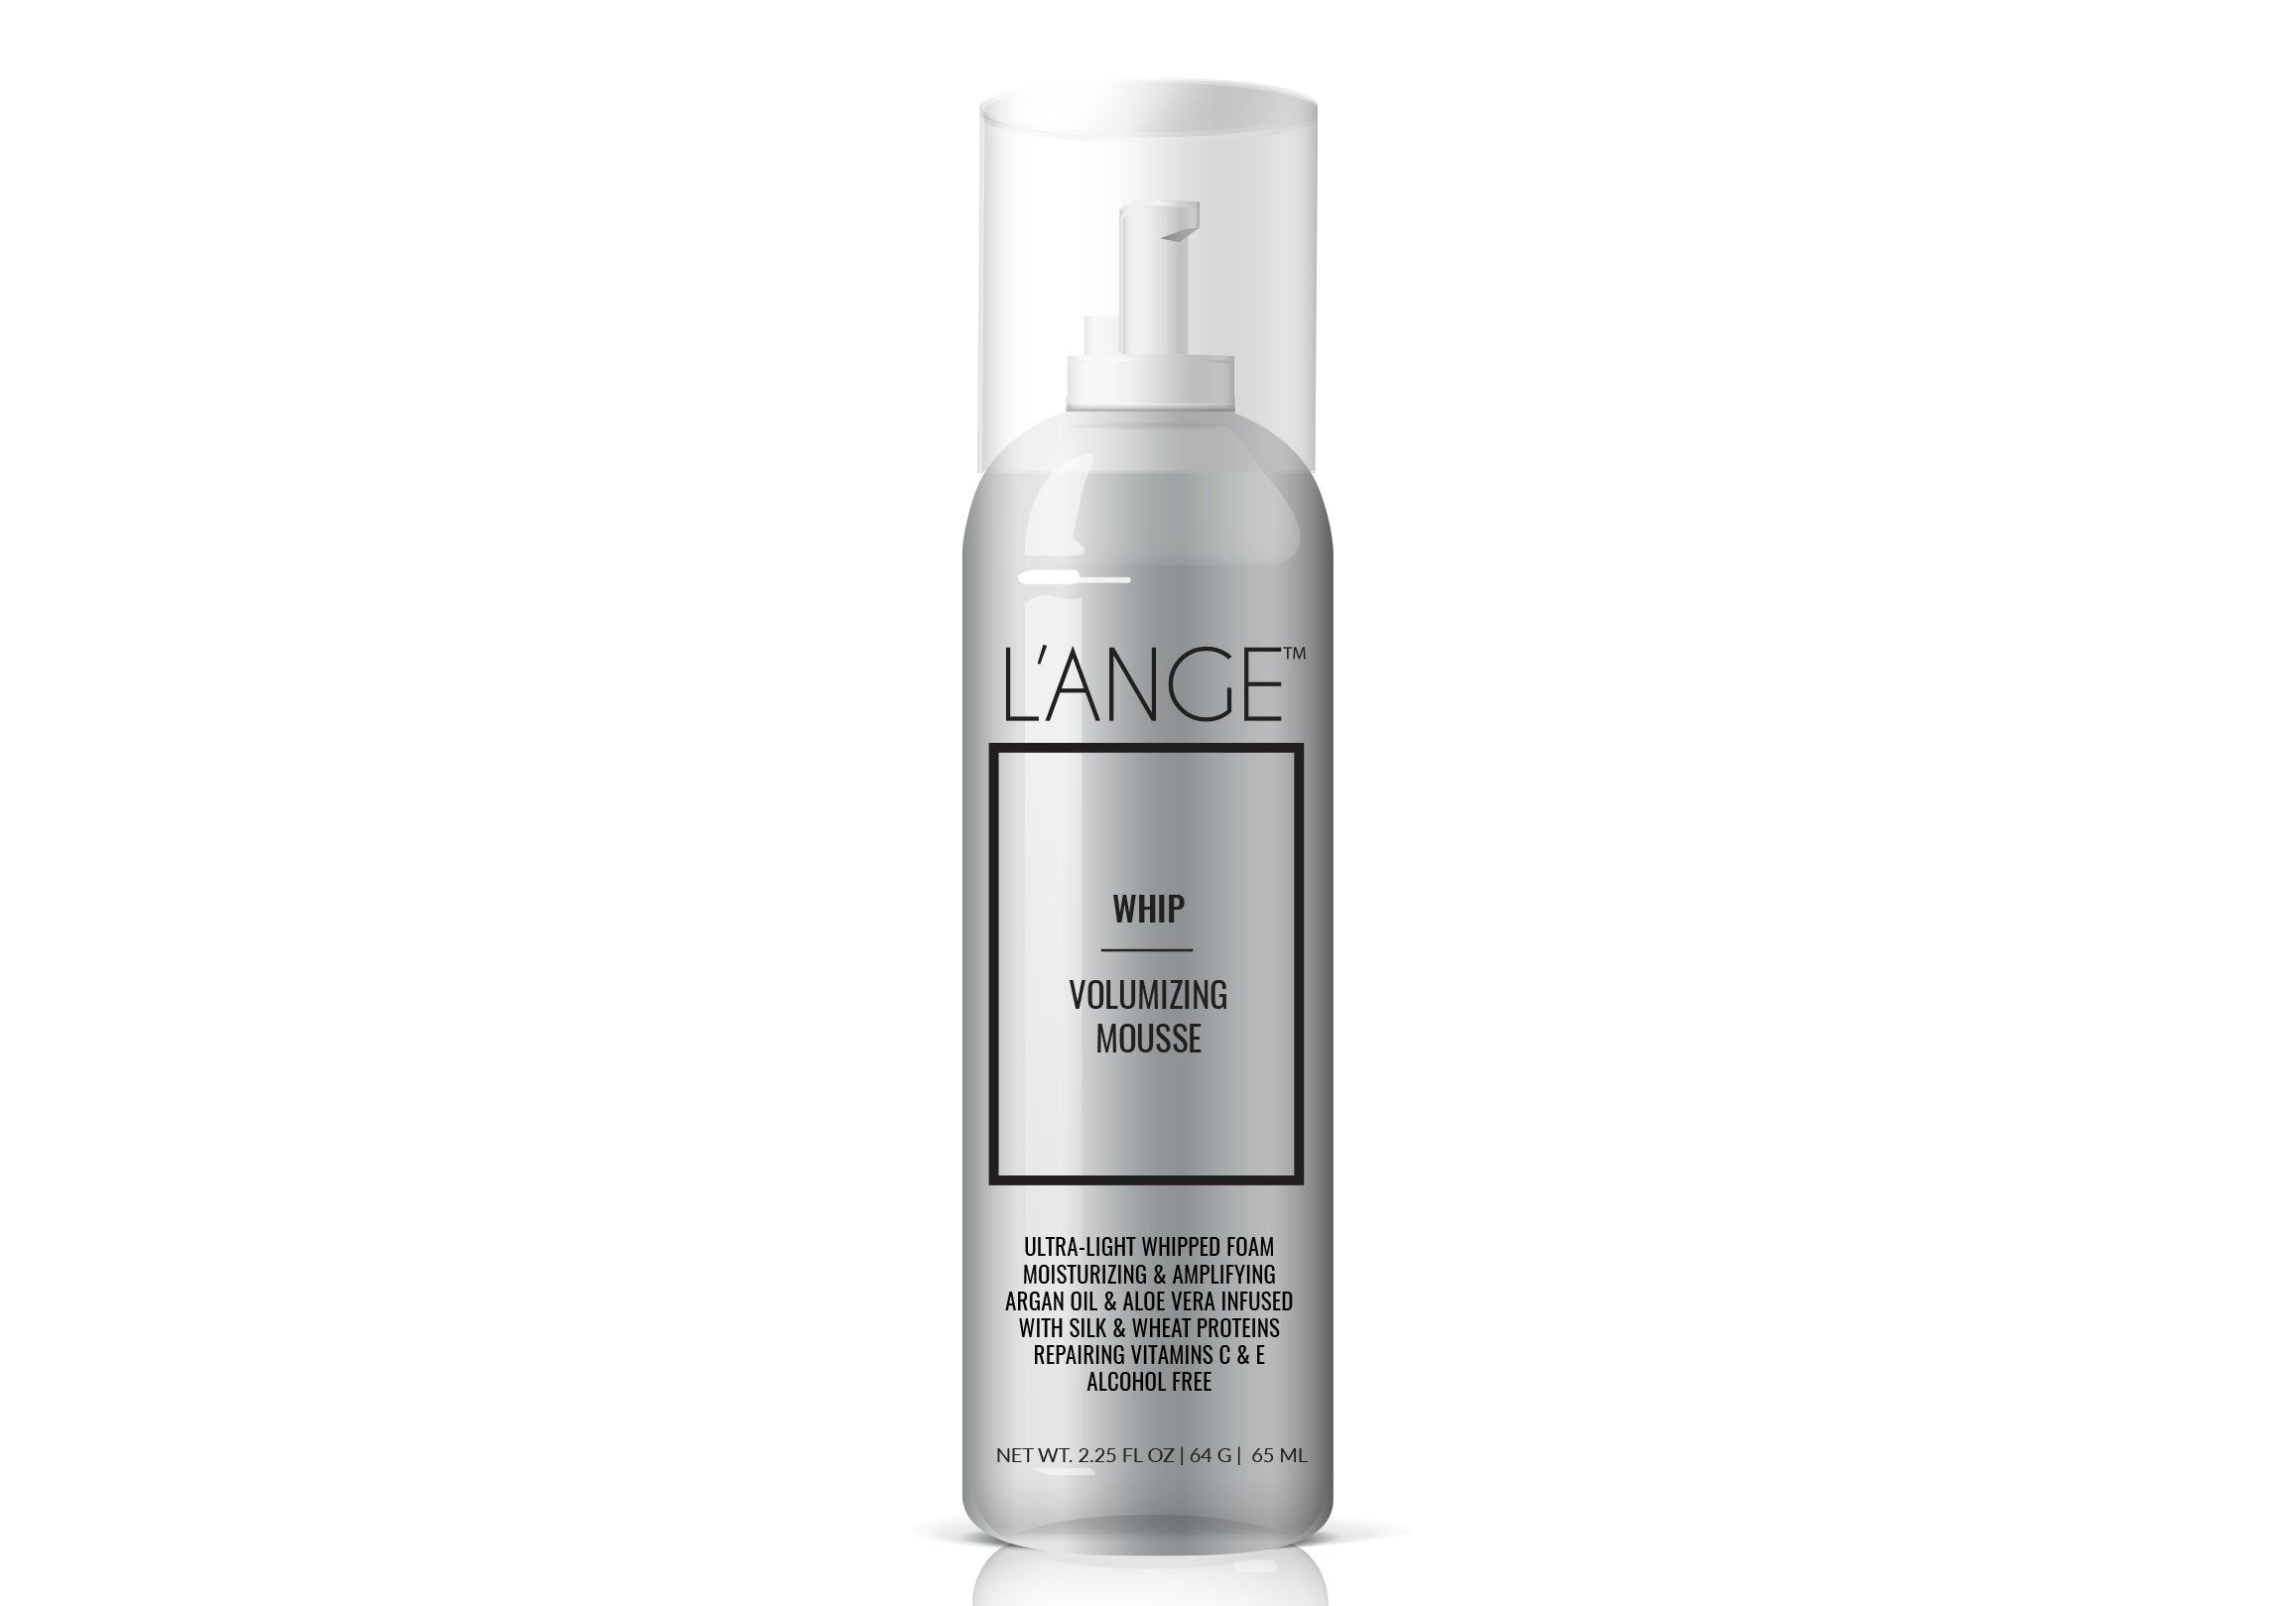 L'ange Travel Size Whip Mousse